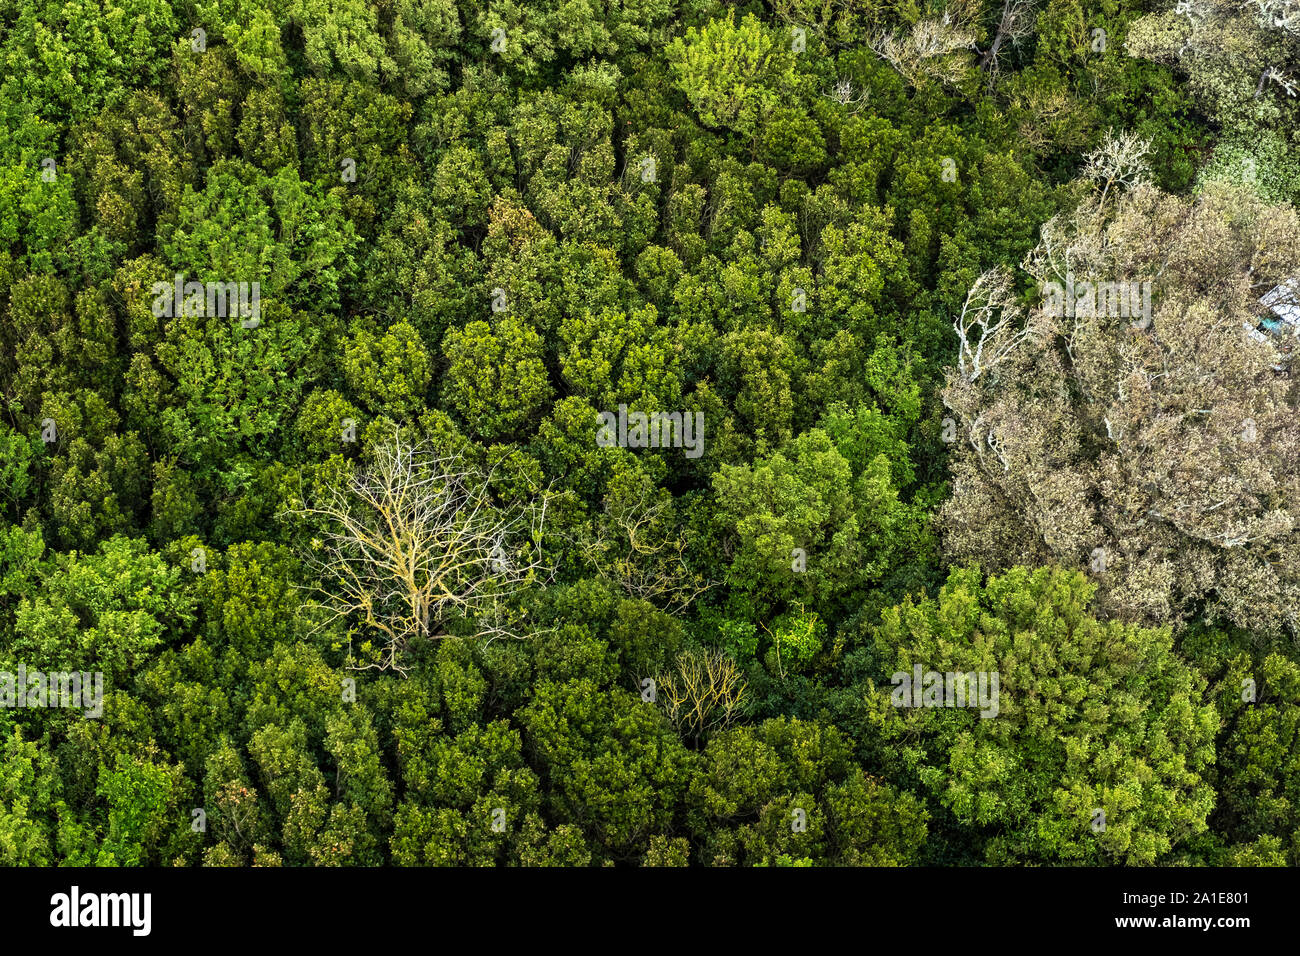 61w x 38h x 3d cm, by: Beautiful Top View Of A Dense Forest On The Island Of Re In France Stock Photo Alamy